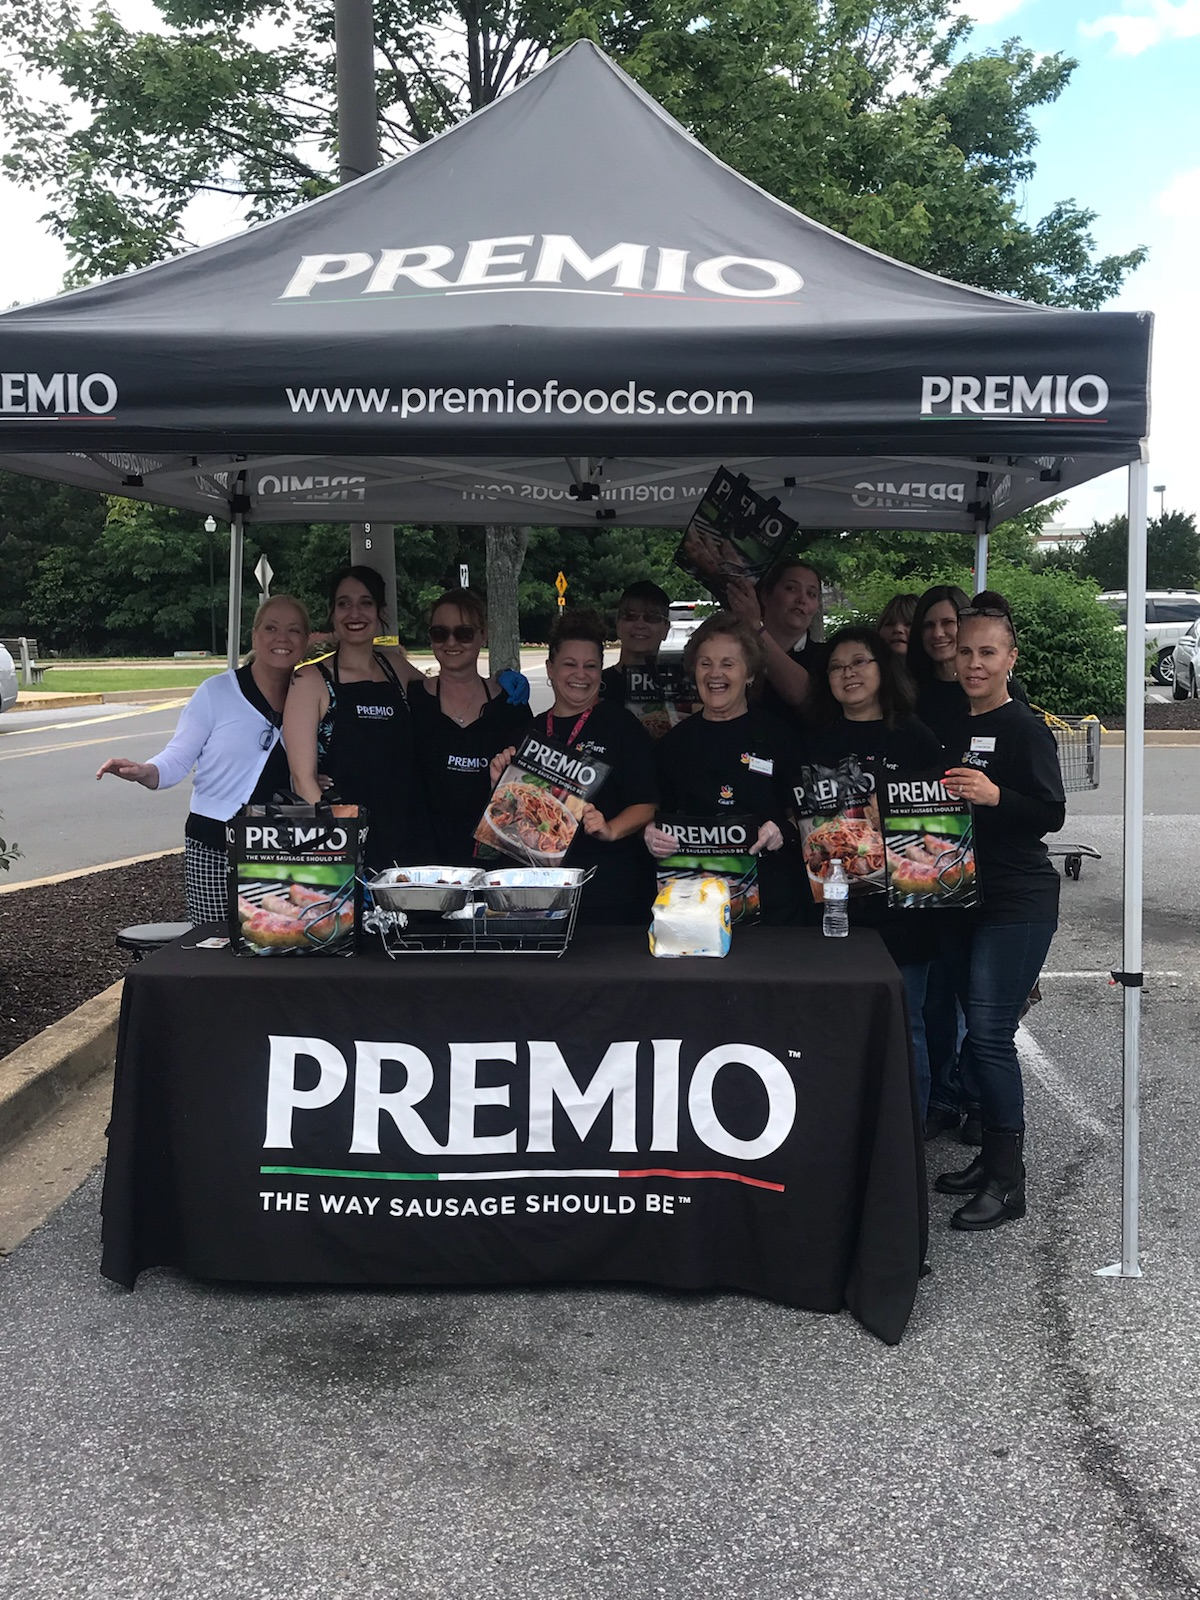 Premio Truck At Store #359 Promoting The Giant Capital BBQ Battle